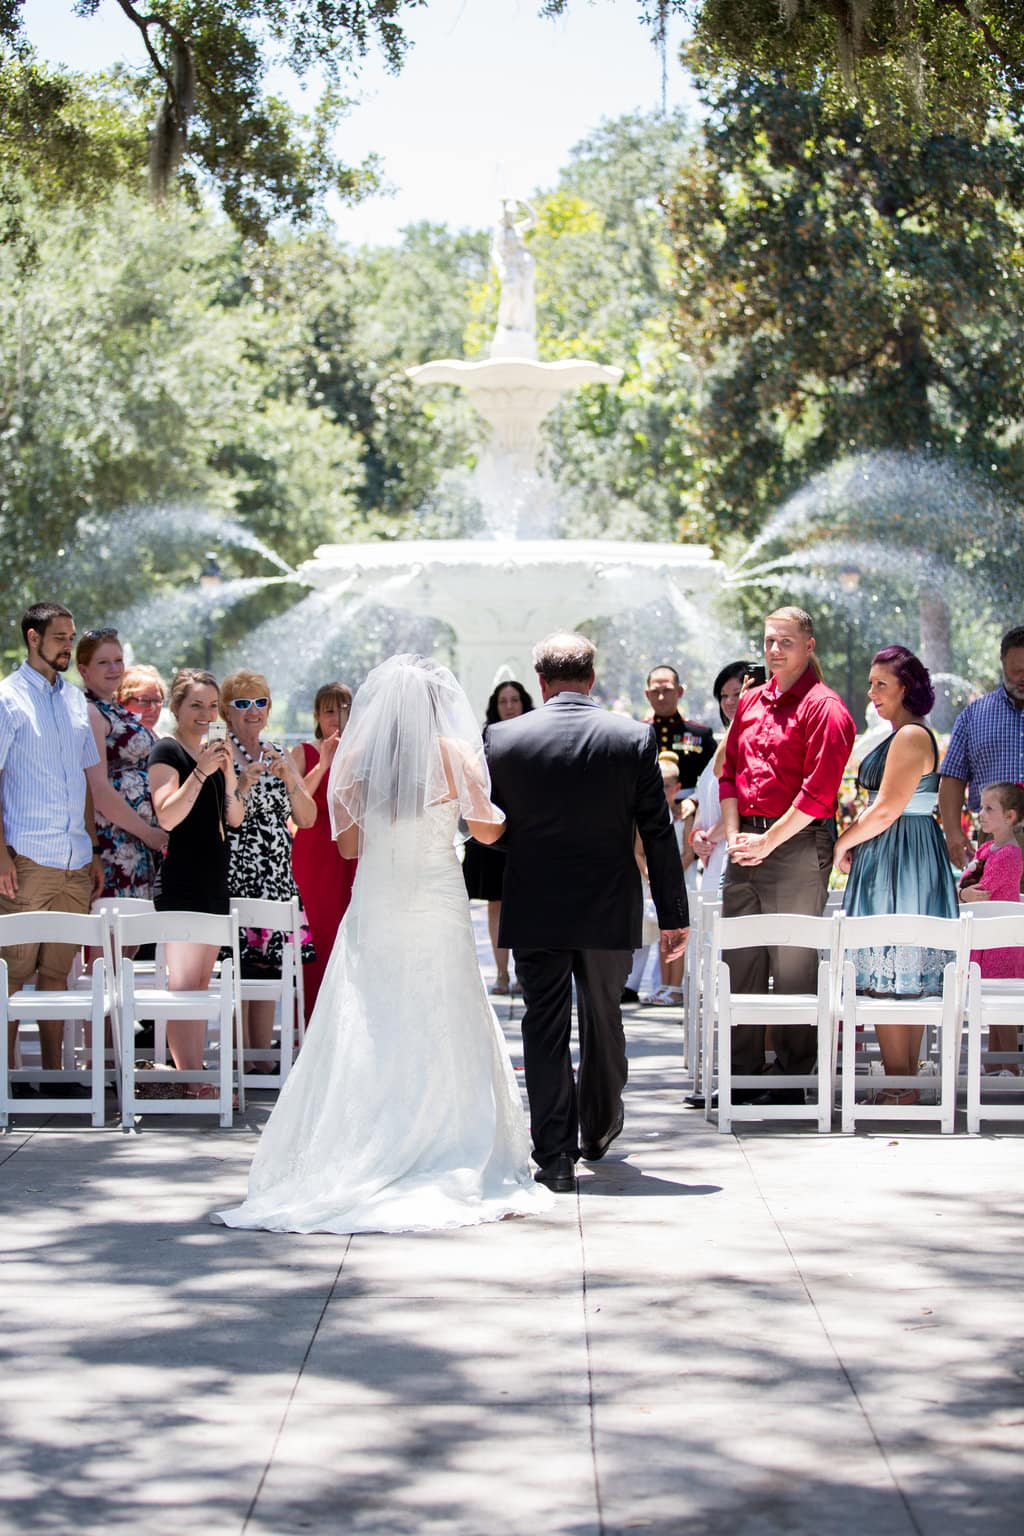 Tracy's Guide to Planning an Elopement or Intimate Destination Wedding in Savannah!